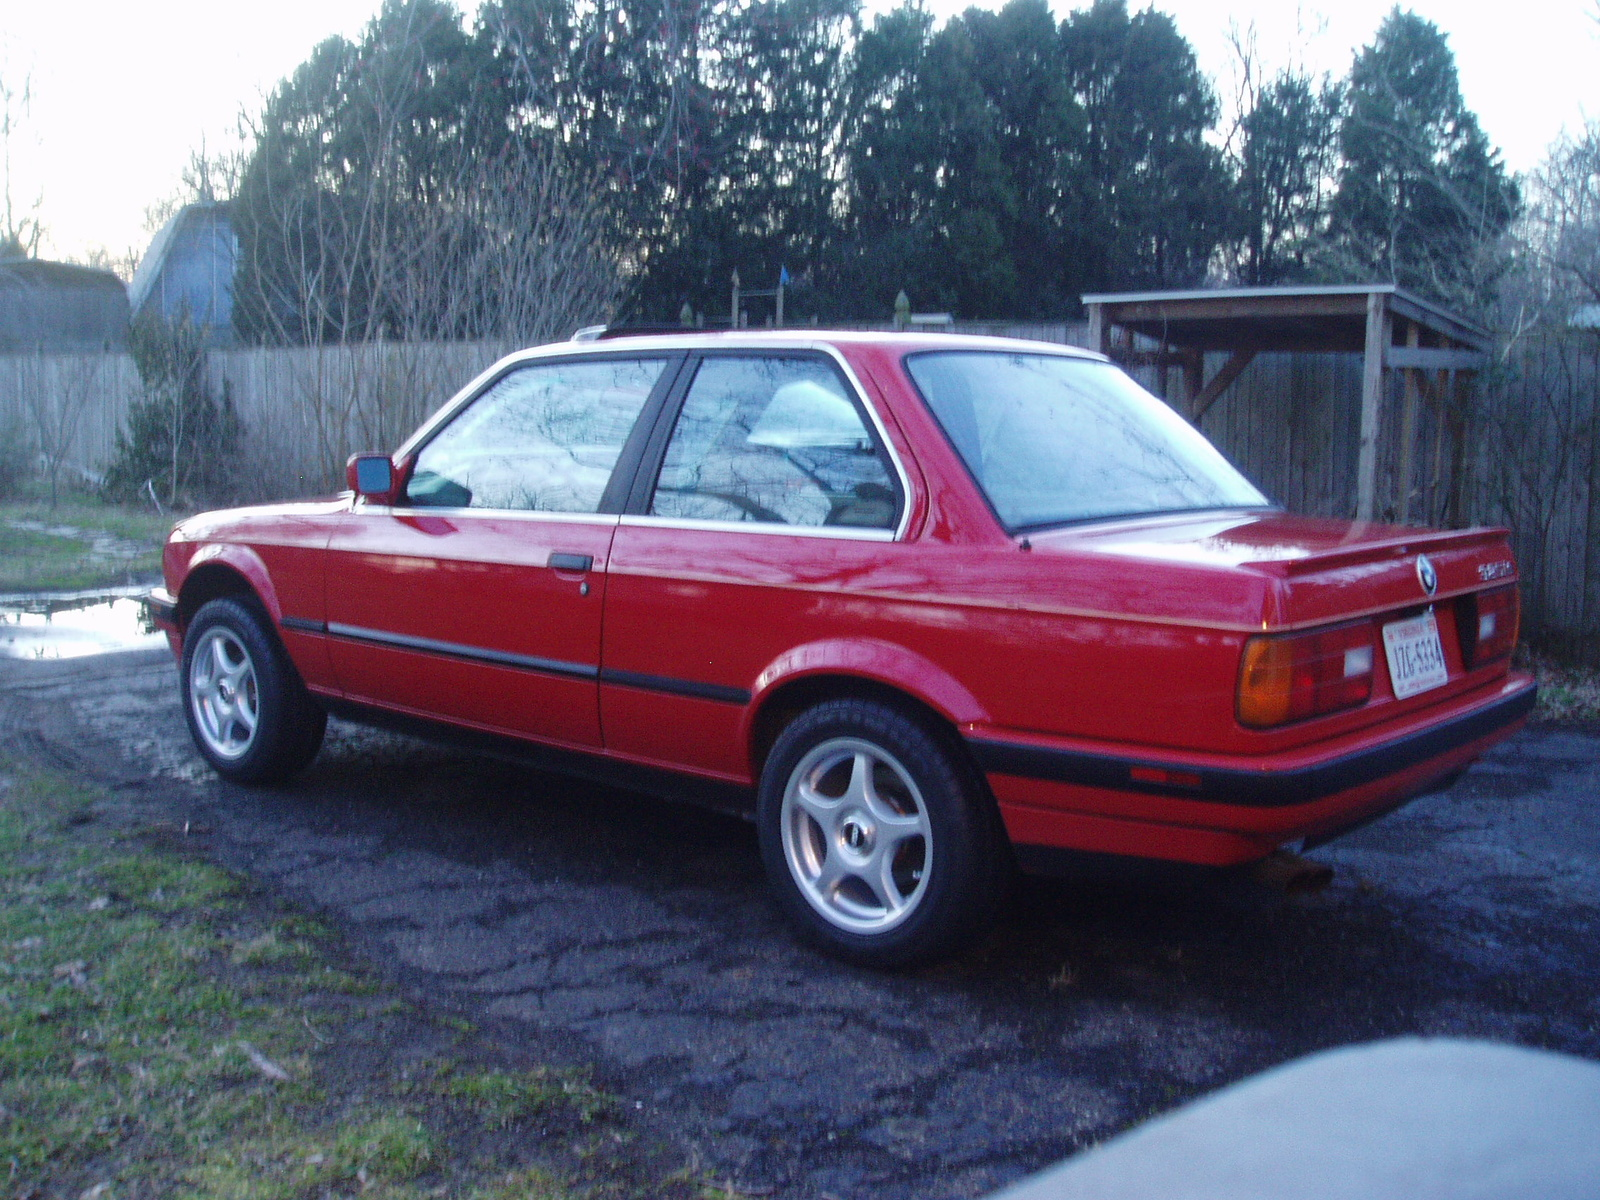 BMW 3 series 323i 1989 photo - 8